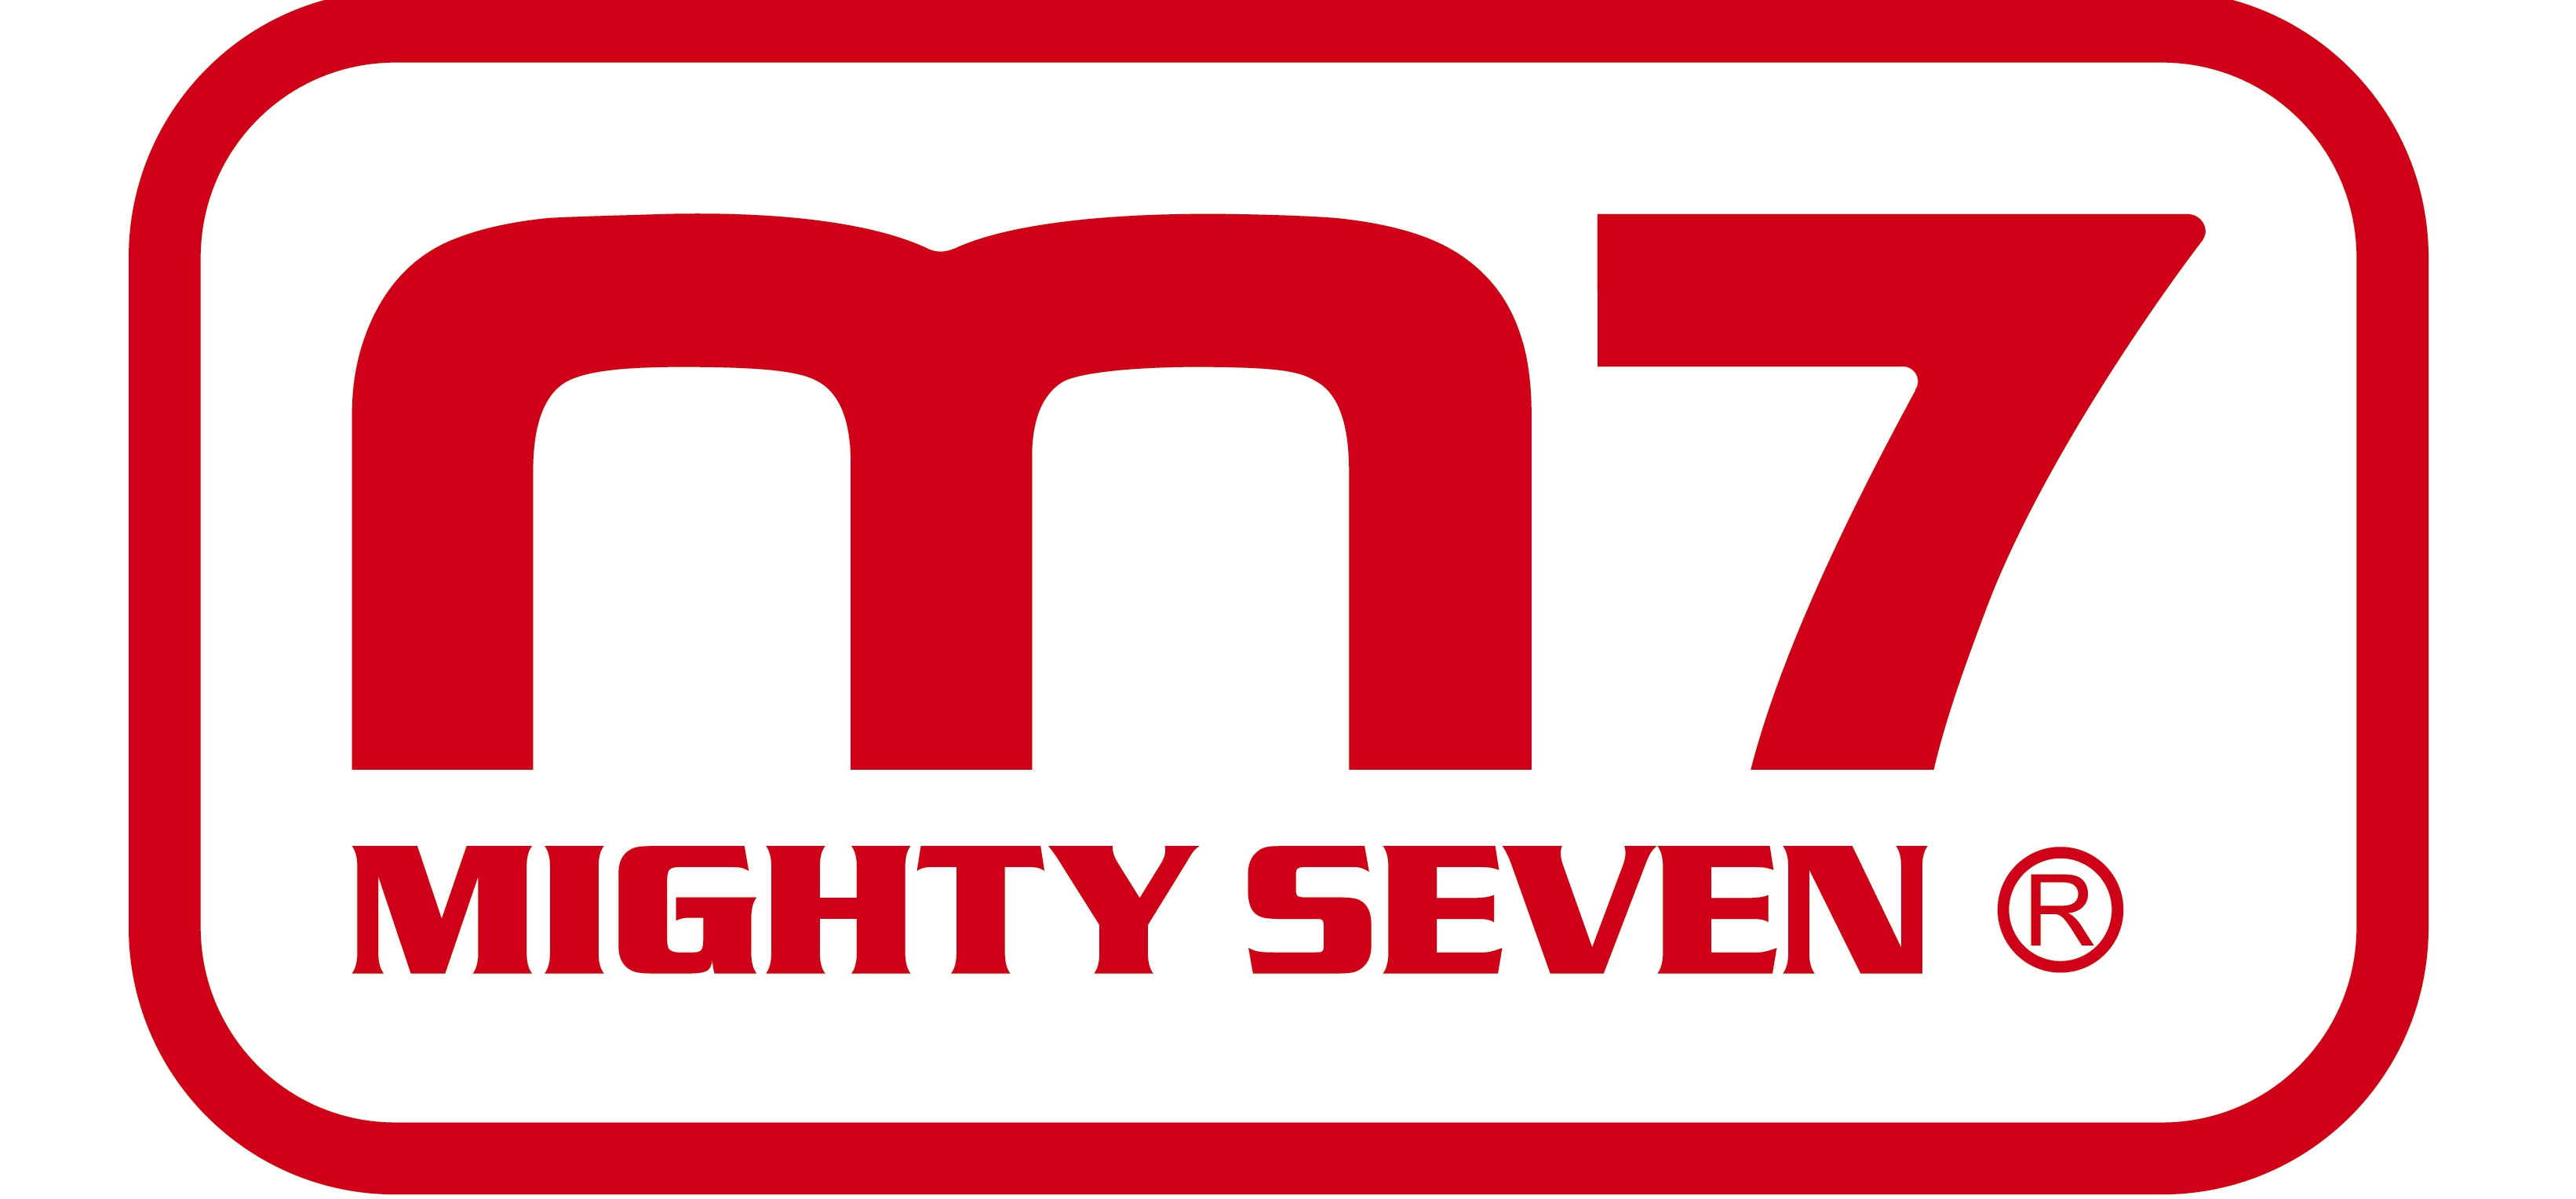 Mighty Seven (M7)